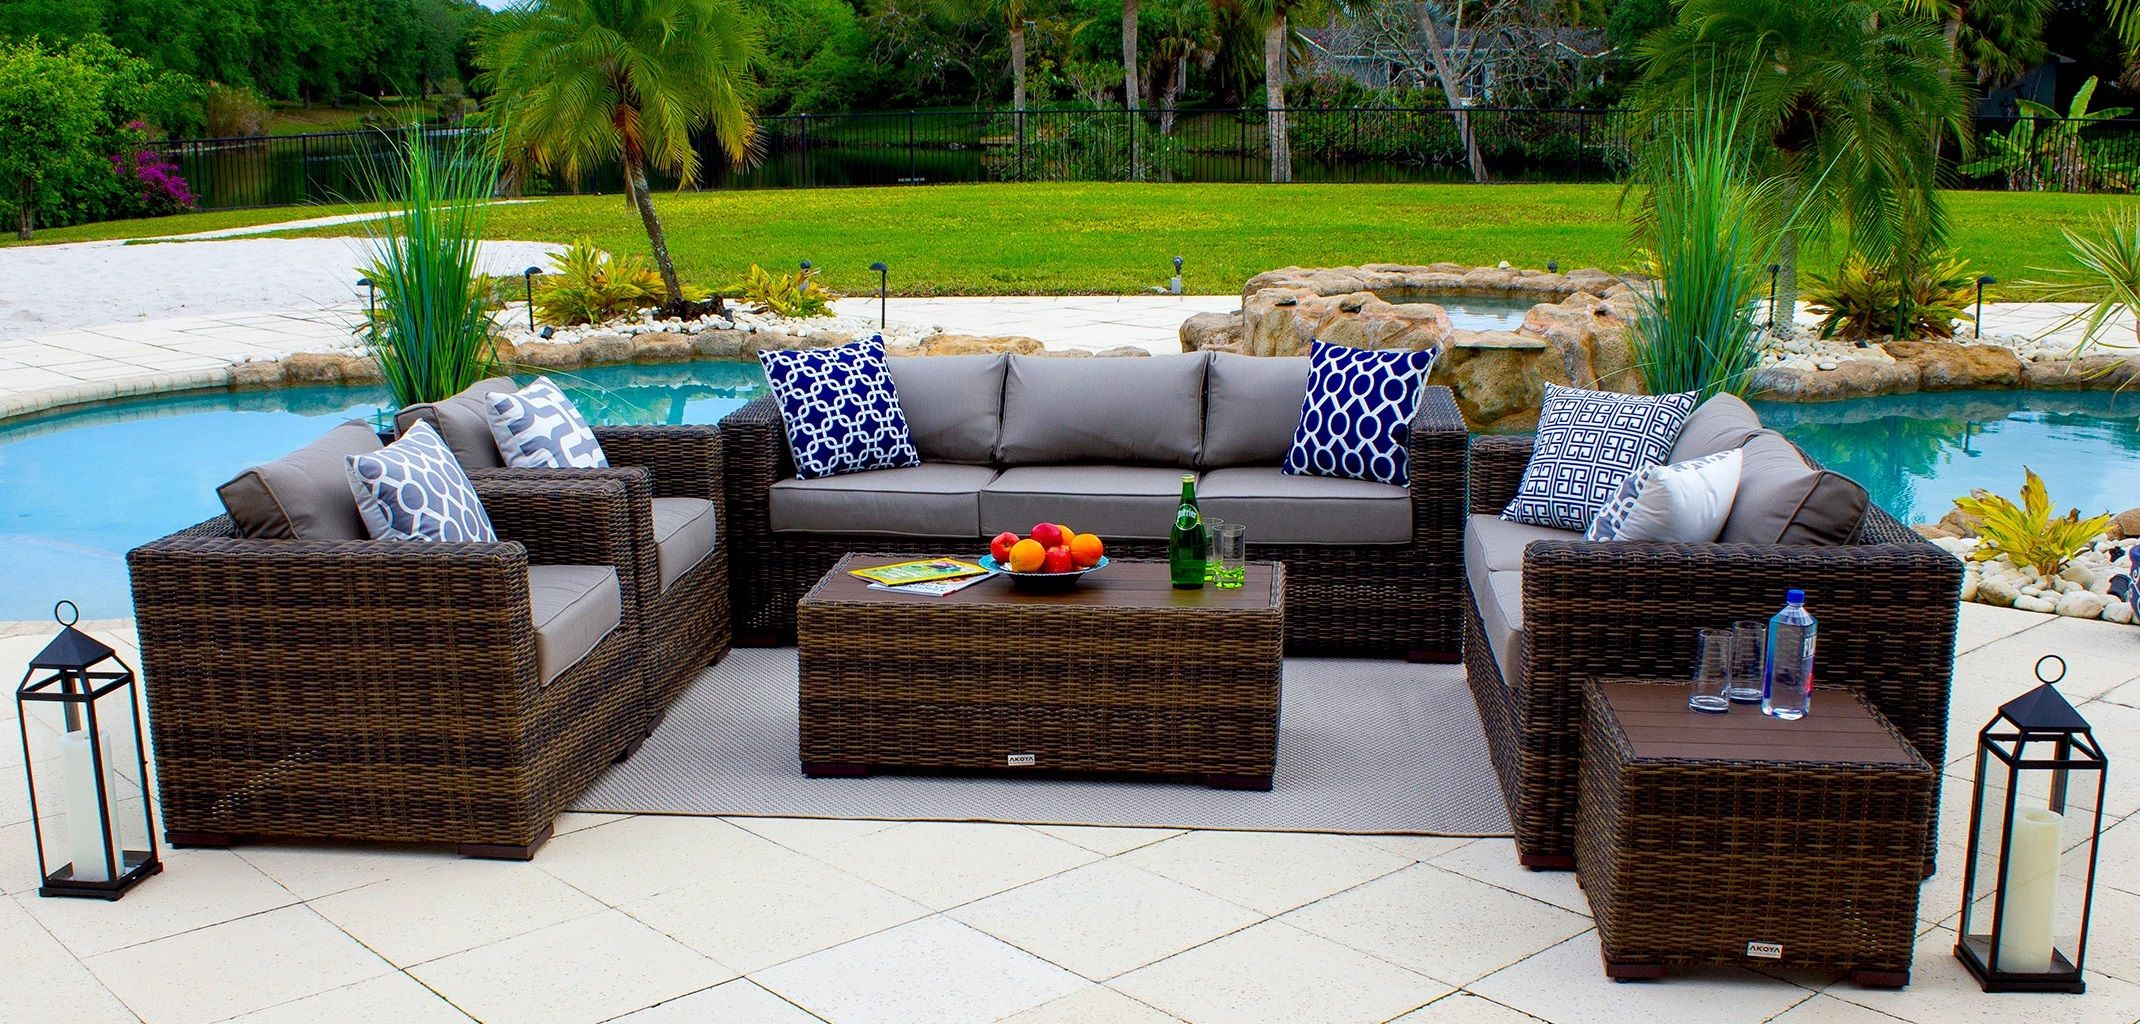 Sunbrella Fabric Is The Go To Option For Exigent Customers When